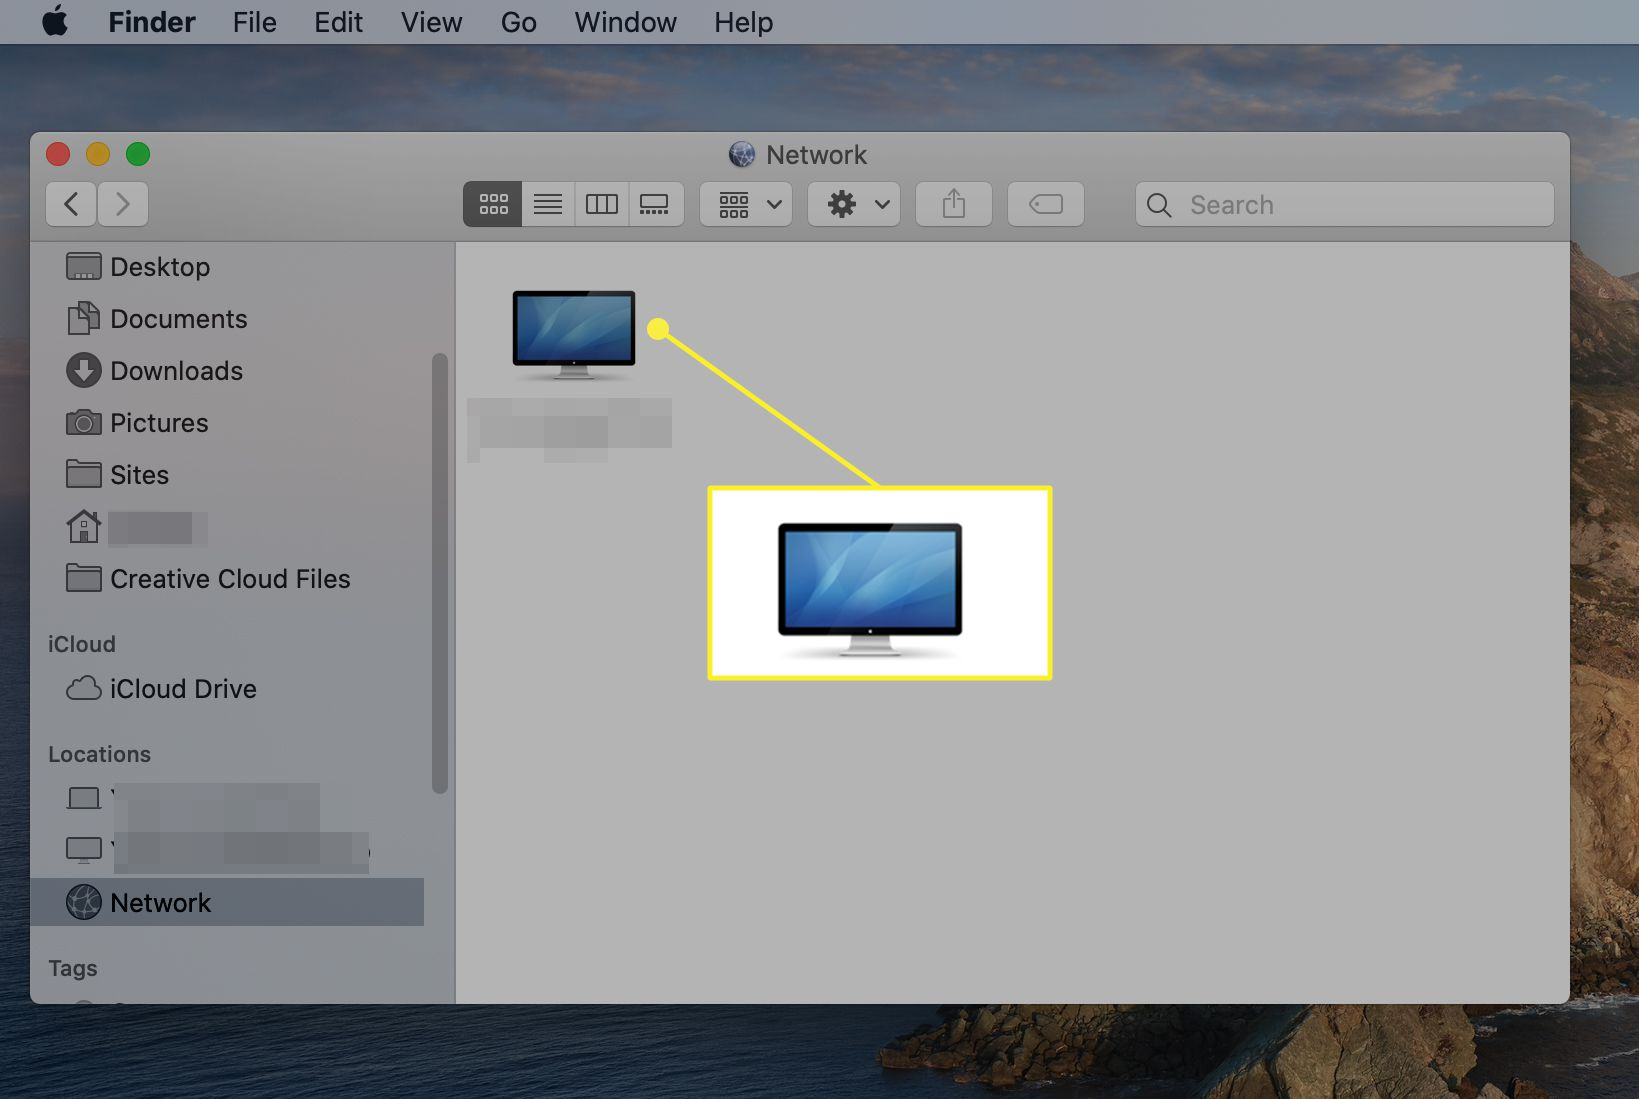 List of shared computers from the Network dialog box under Locations in the Finder Sidebar in macOS